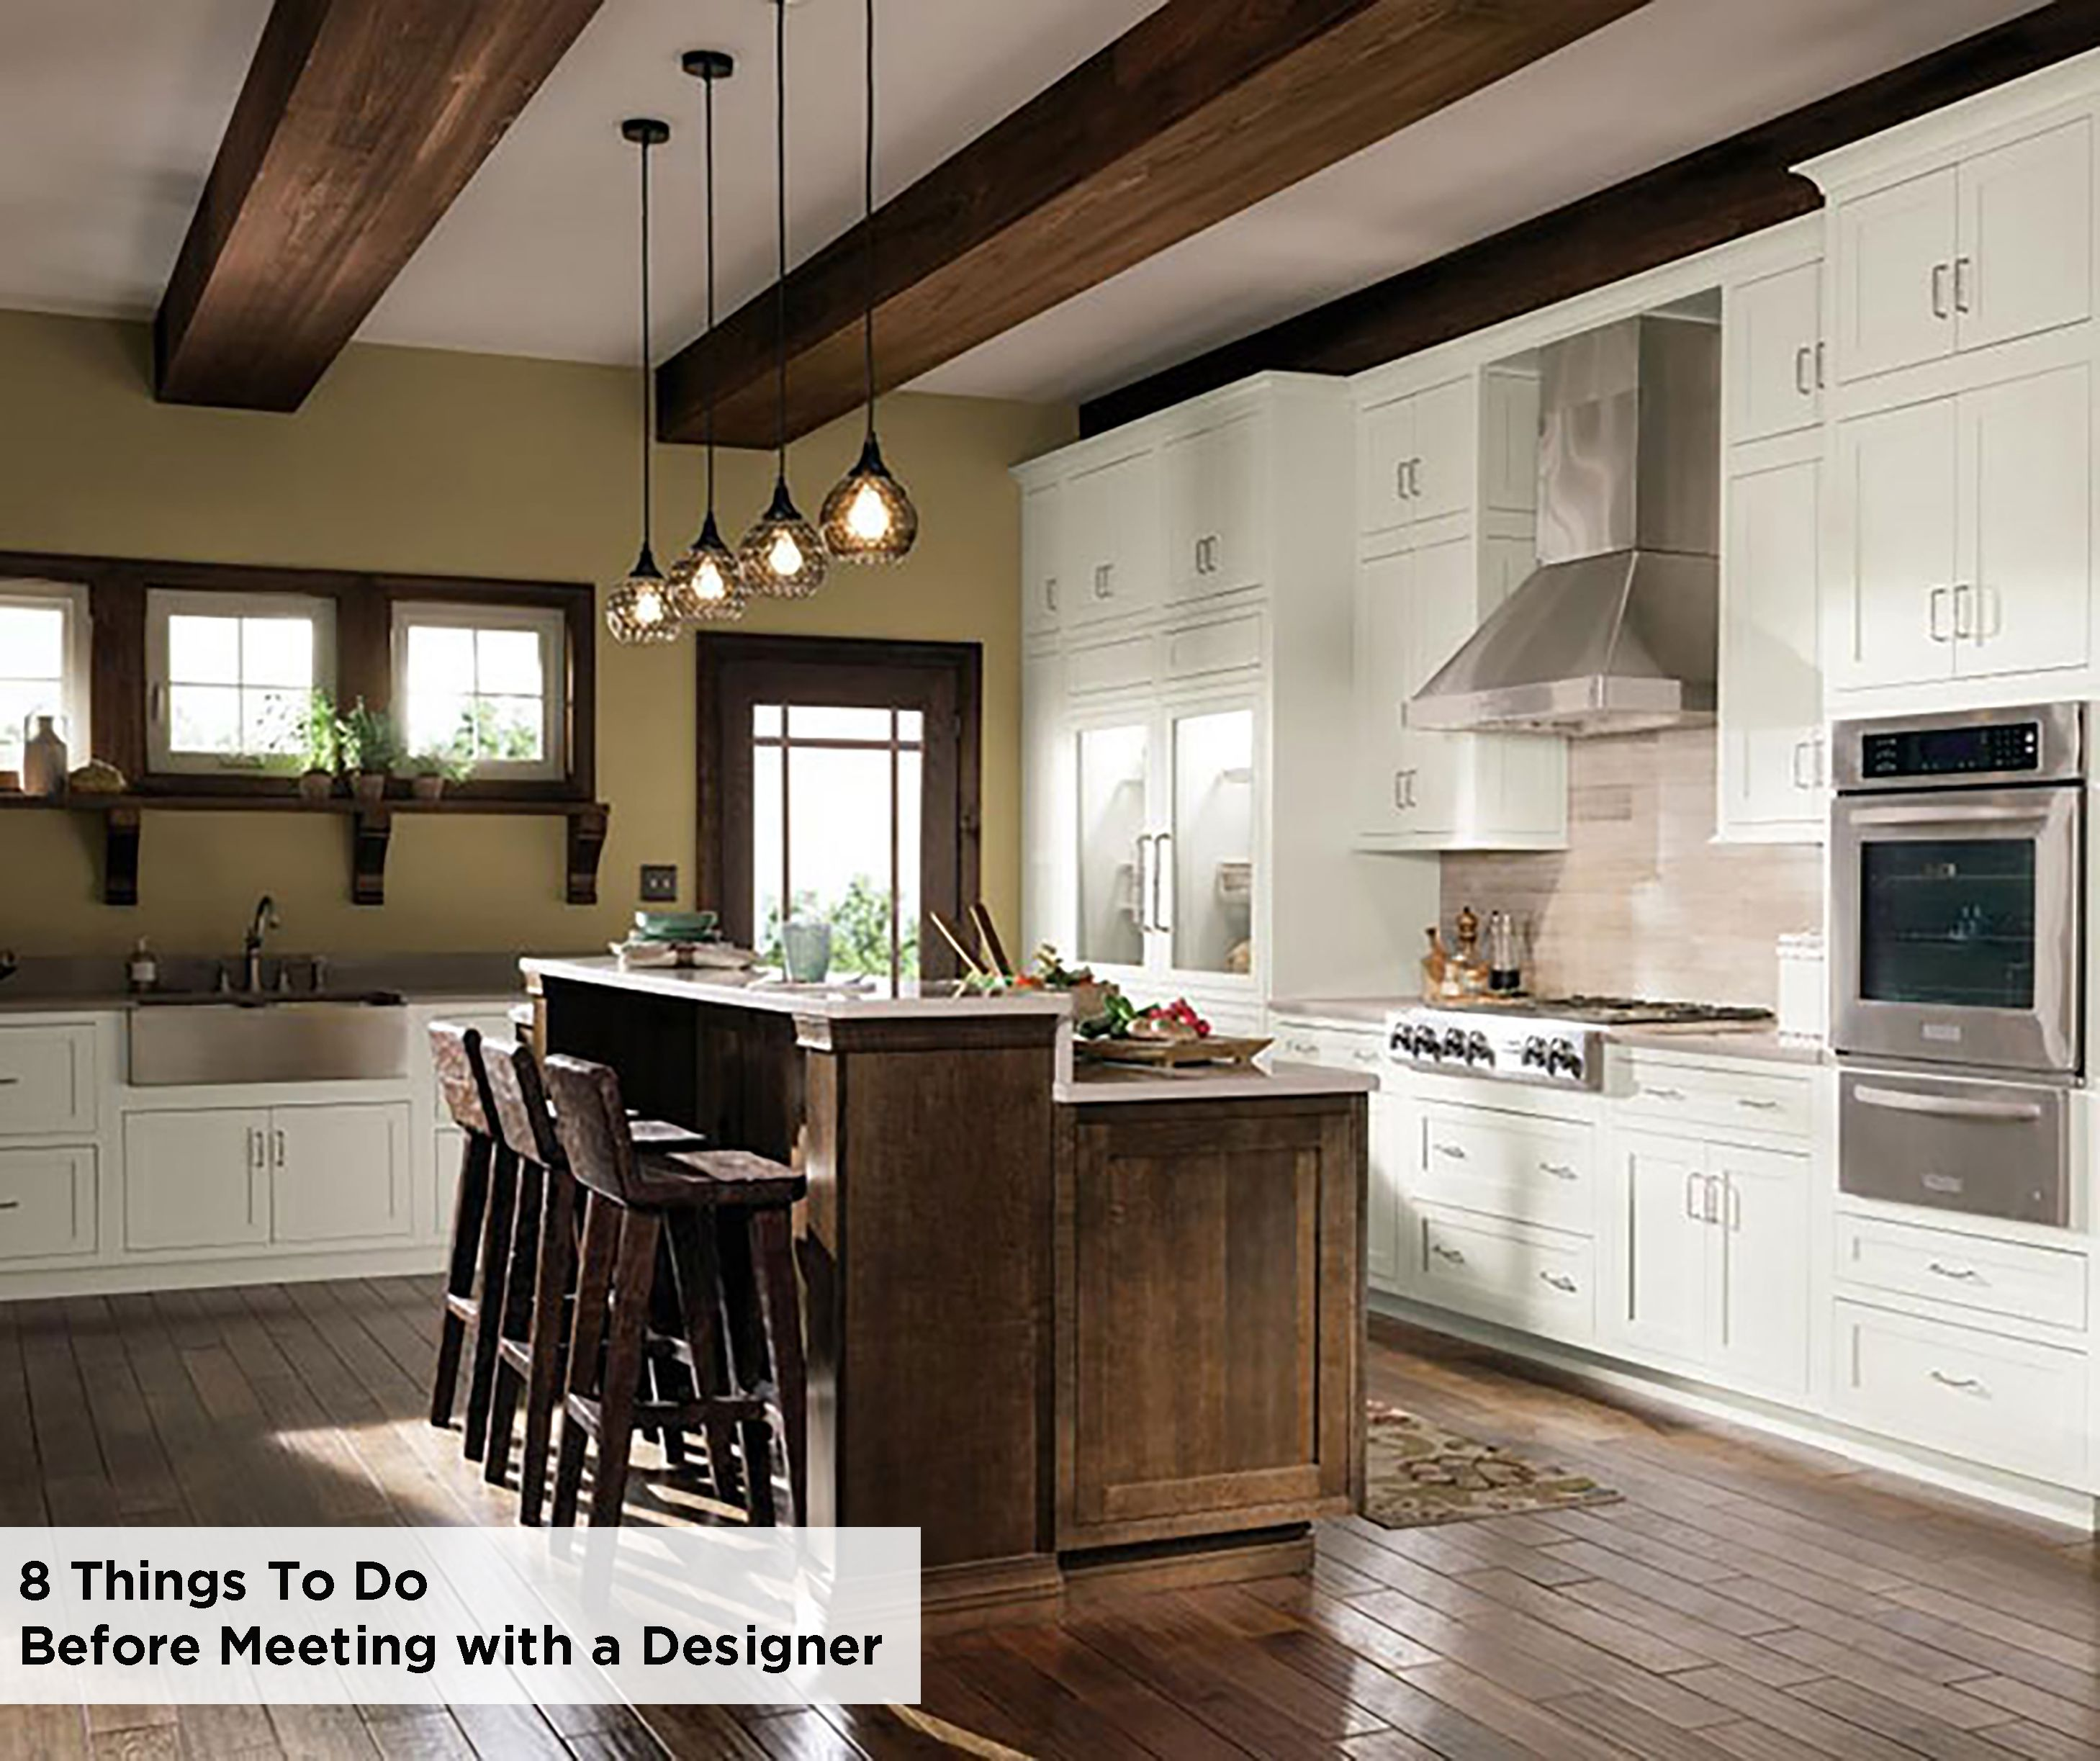 Here Are 8 Things To Do Before Meeting With A Decora Cabinets Designer. Be  Proactive